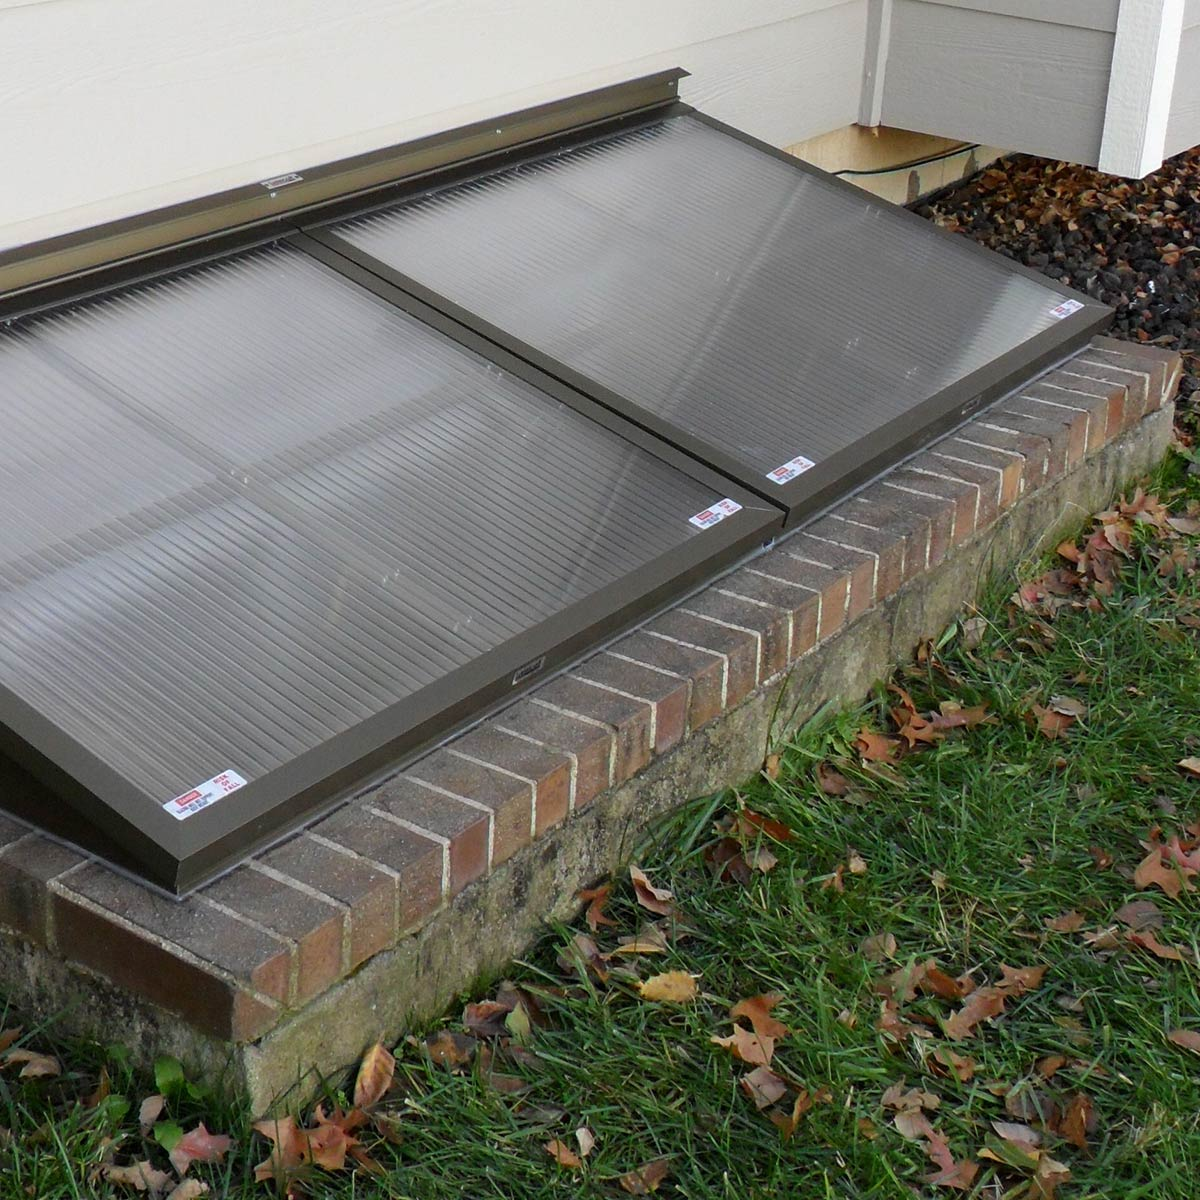 Egress window well covers built by Lustercraft